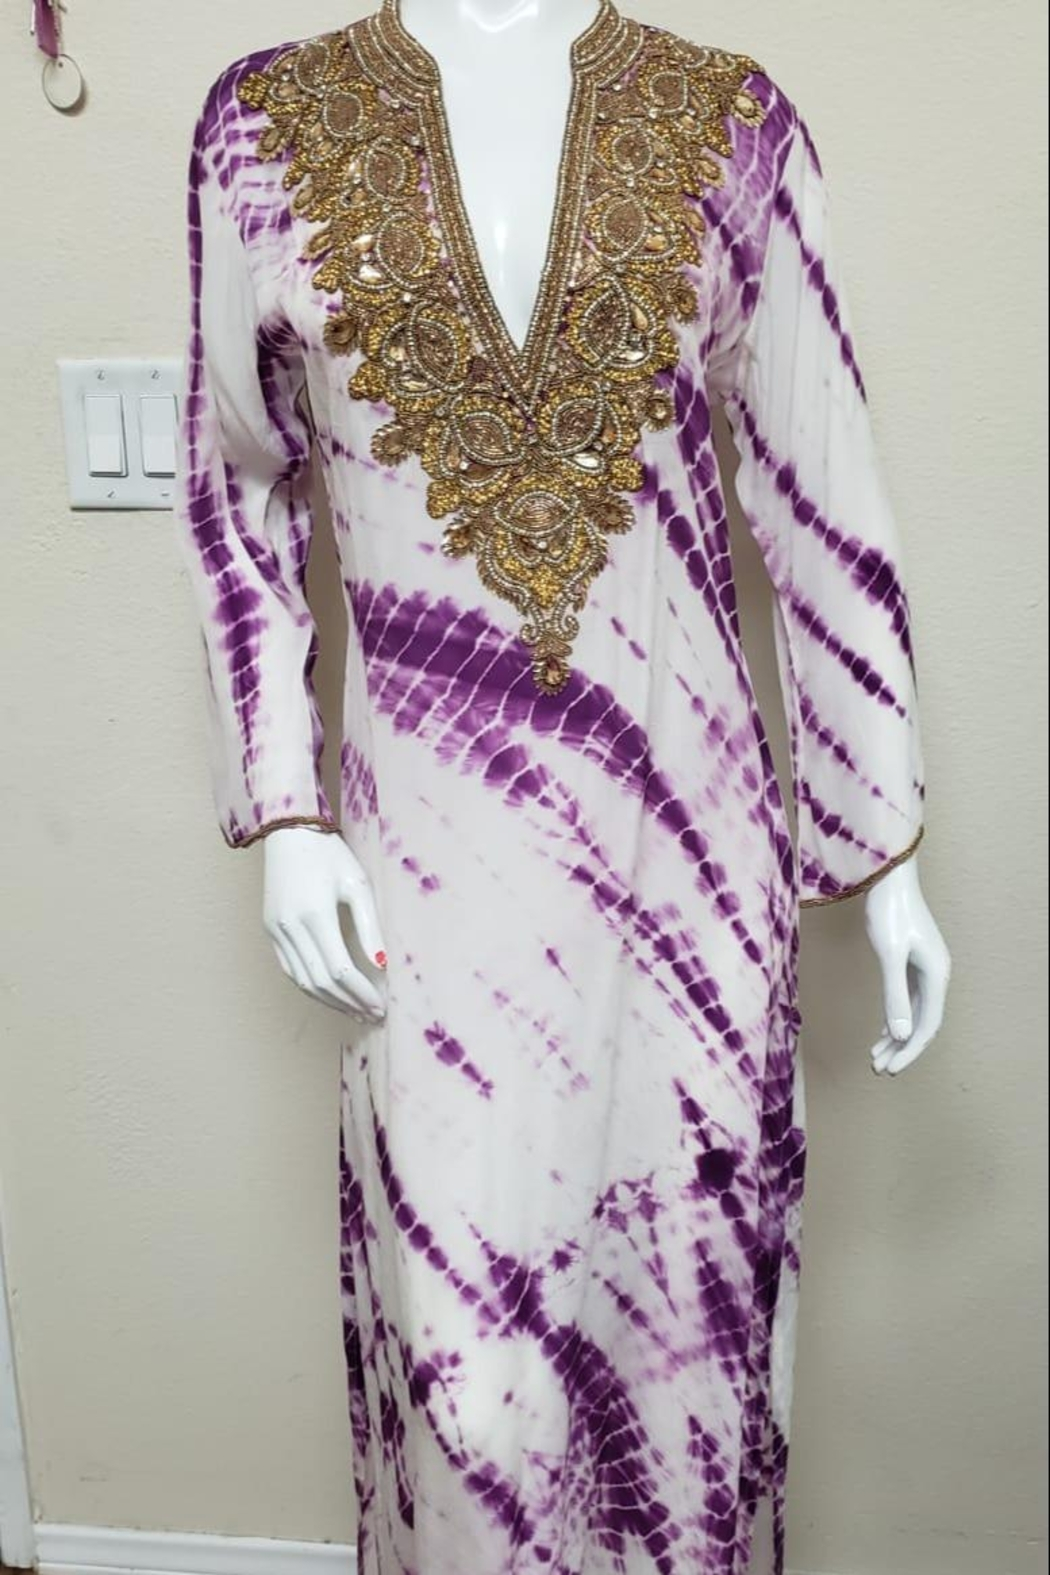 Kareena's White & Purple Dress - Main Image